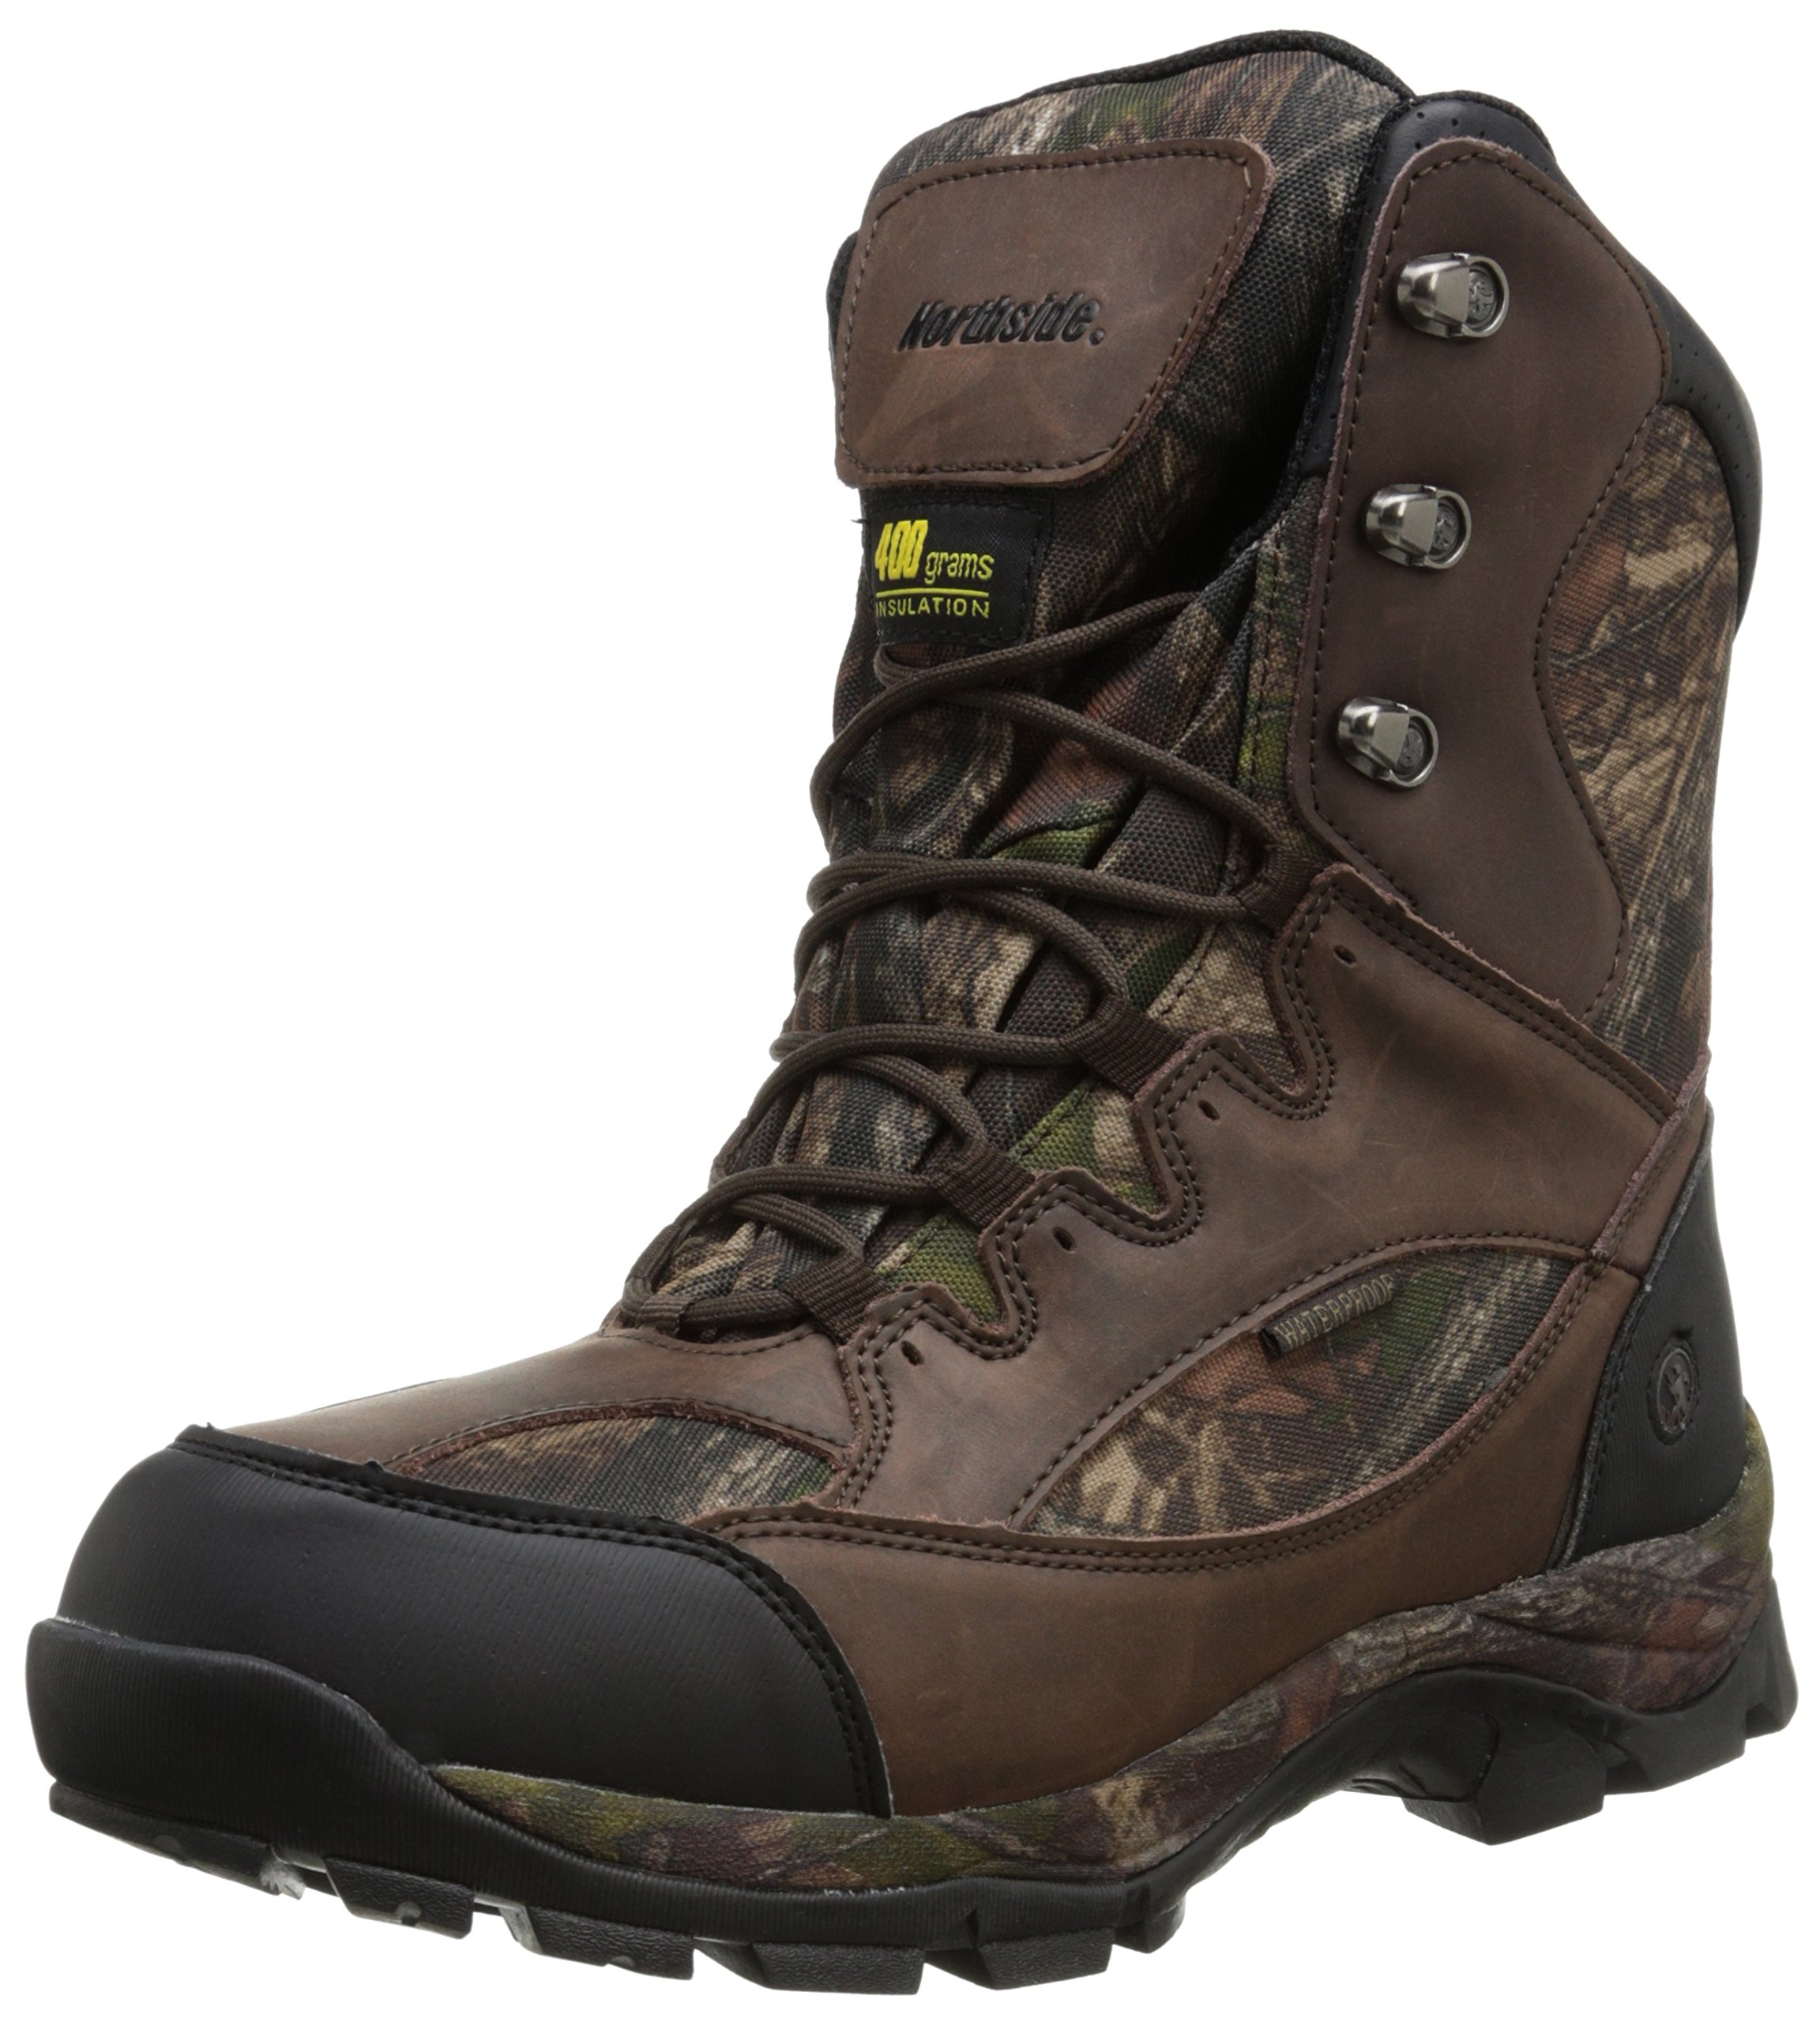 Northside Men's Renegade 400 Lace-Up Hunting Boot,Brown Camo,11.5 M US